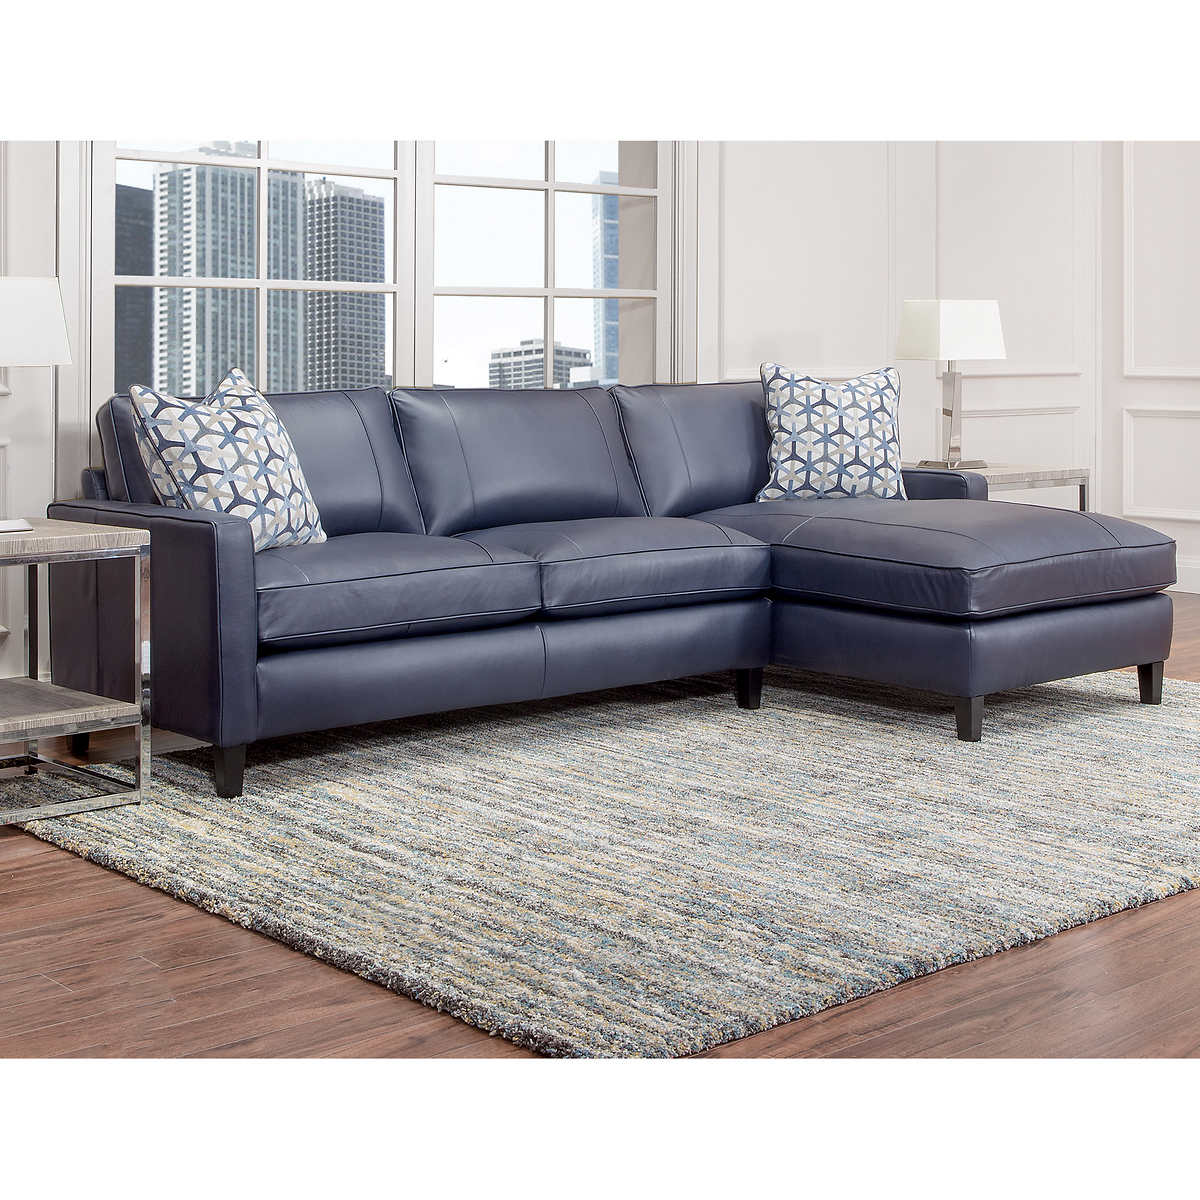 Navy Blue Leather Sofa And Loveseat Thesofa